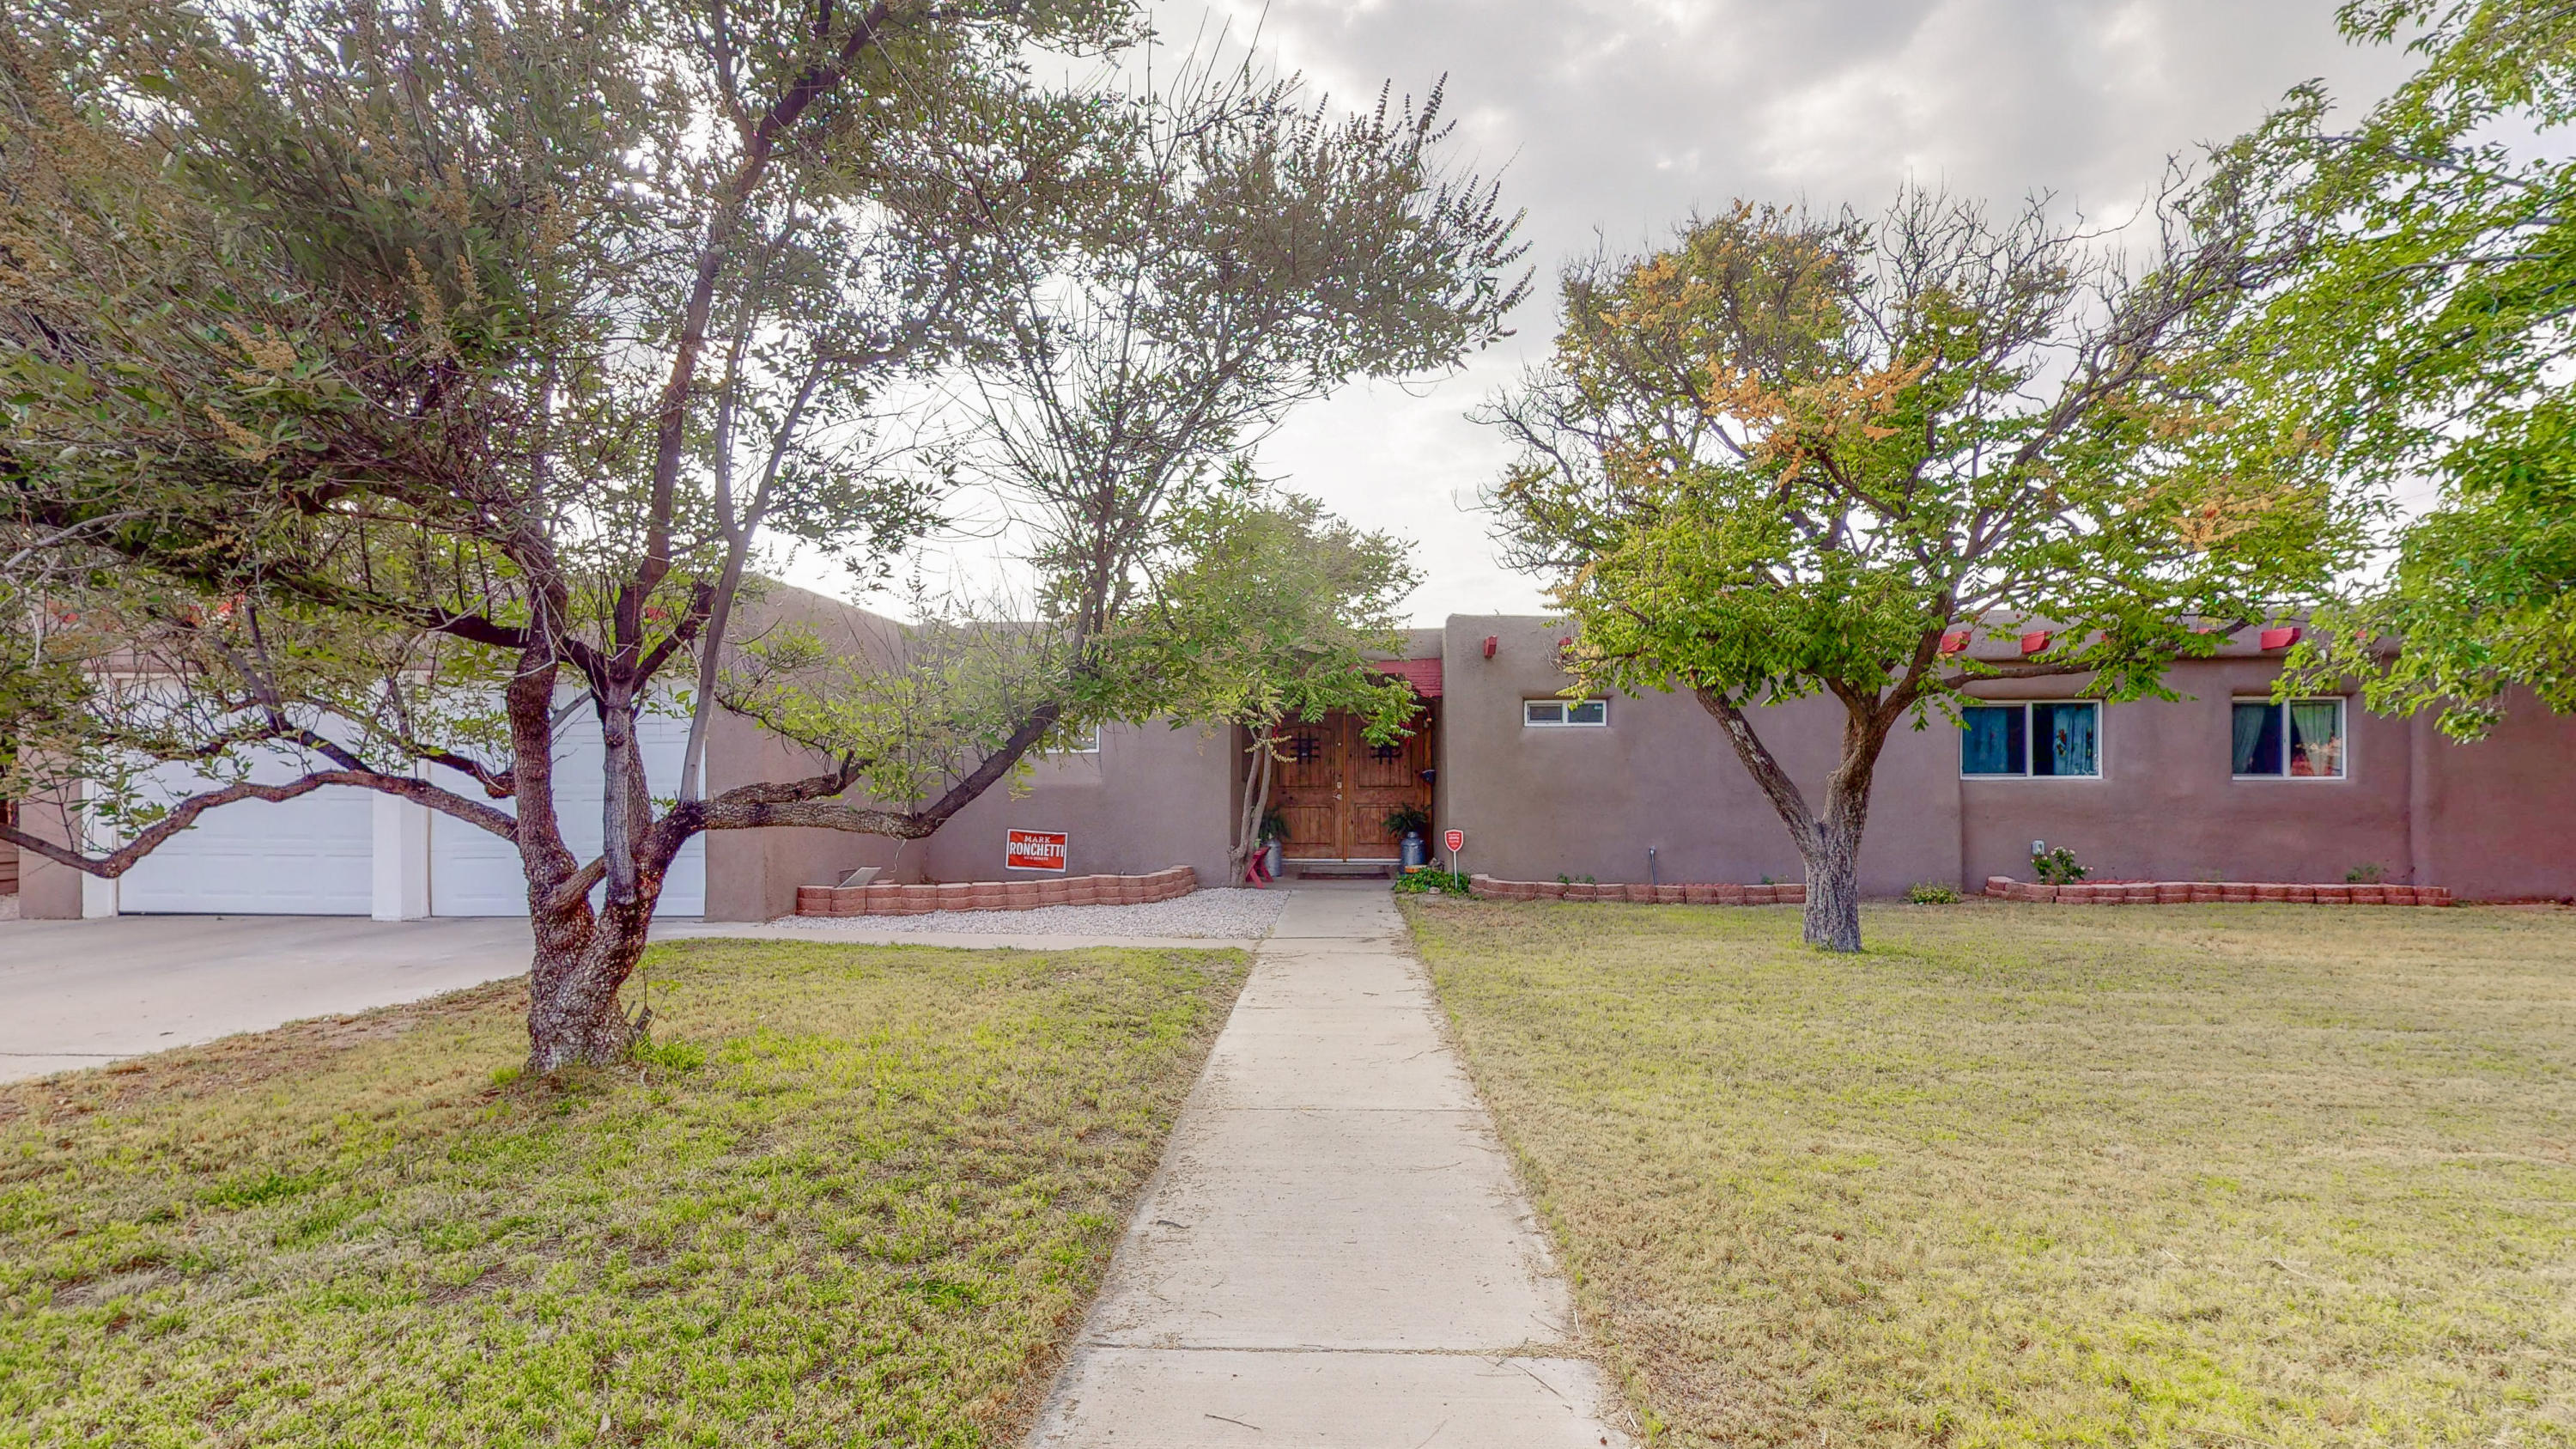 WELCOME HOME to this spacious 4-bedroom, 2-bath home in the established Siesta Hills neighborhood. Recently remodeled and plenty of new updates have been done throughout this home inside and out! This spacious homeincludes a large family room with hard wood flooring. A cozy wood burning fireplace and a separate dining area. the remodeled kitchen includes a gas stove/oven & microwave along with a separate breakfast nook.  Separate and spacious laundry room with plenty of pantry space. Large 2-car garage and a back covered patio and RV parking/backyard space. Close proximity to KAFB,restaurants & shopping. Make this lovely home yours. Schedule a showing today!